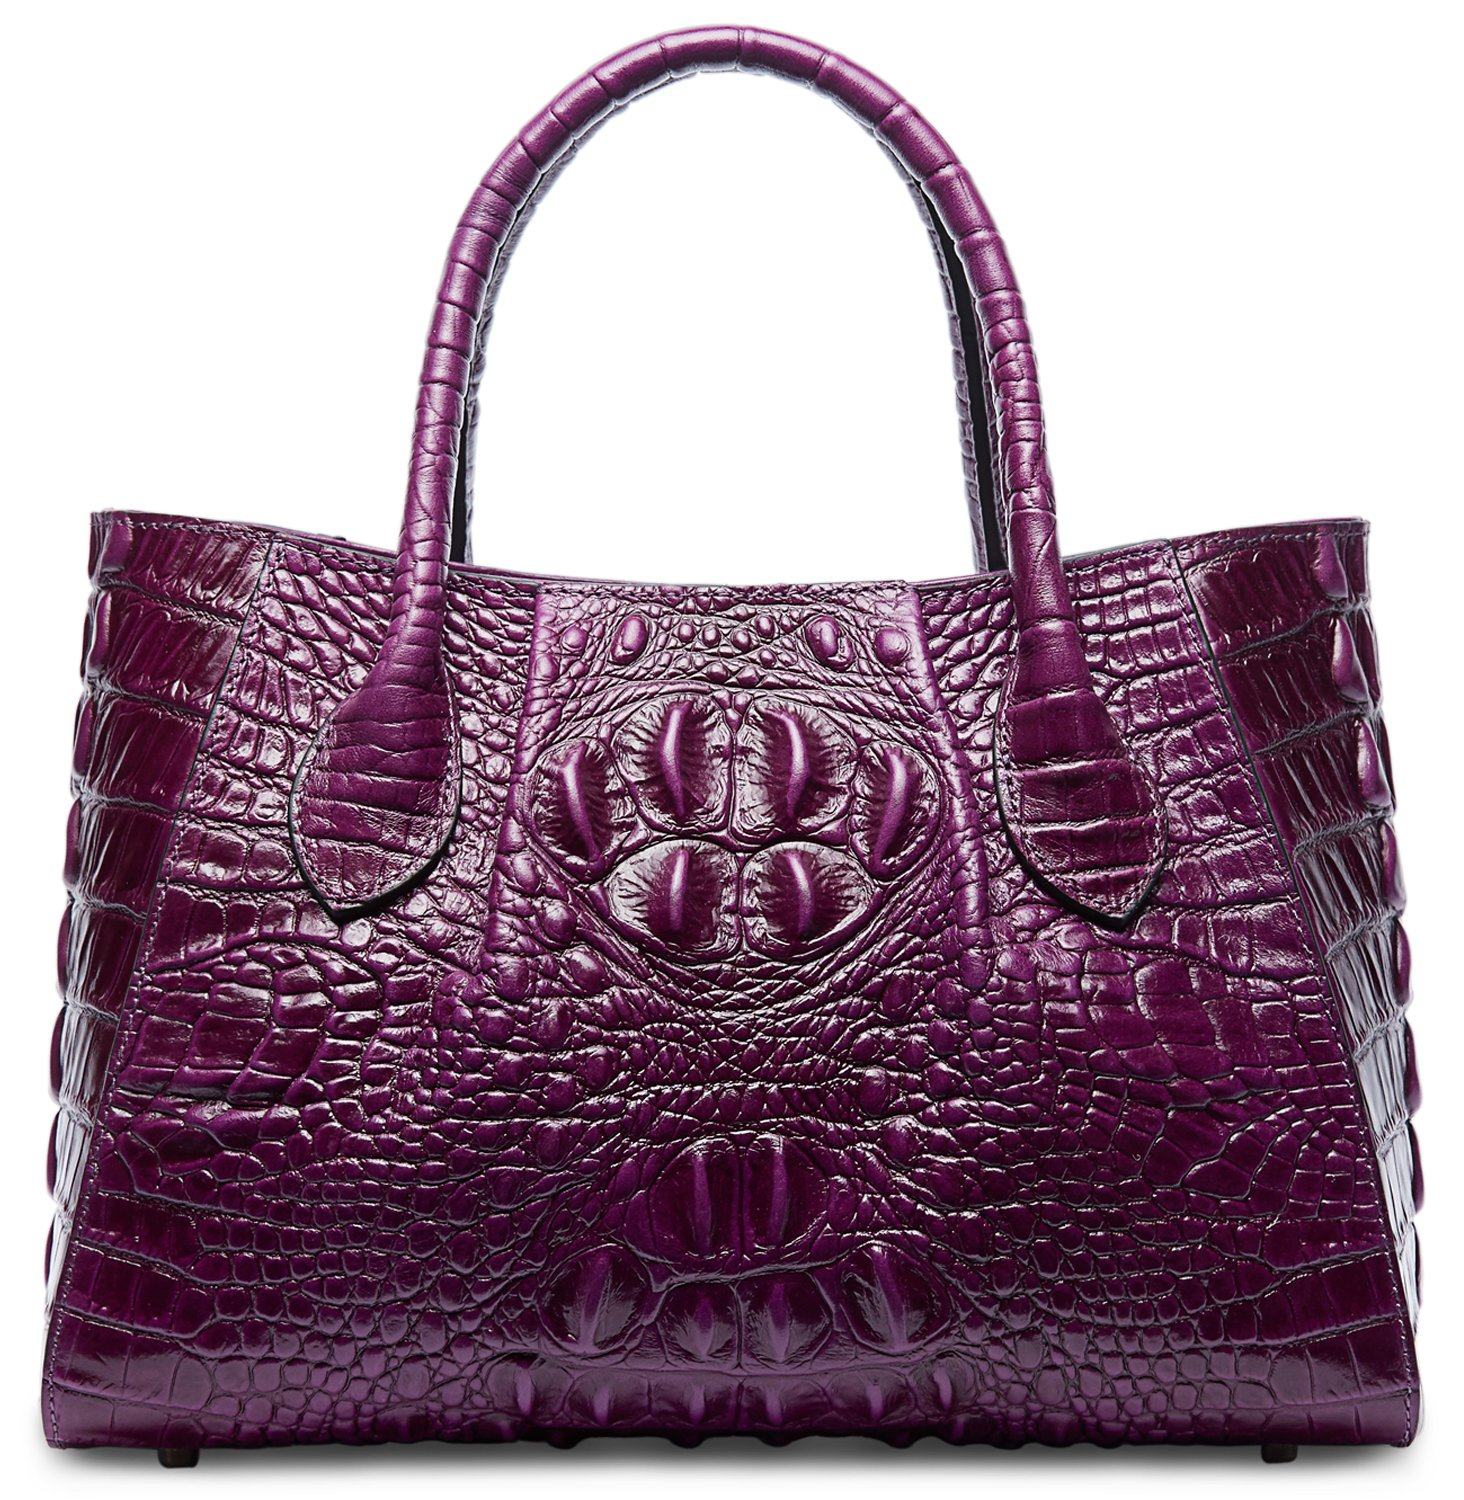 PIFUREN Designer Crocodile Top Handle Handbags Womens Genuine Leather Tote Bags M1107 (Small Size, Small Size Violet)